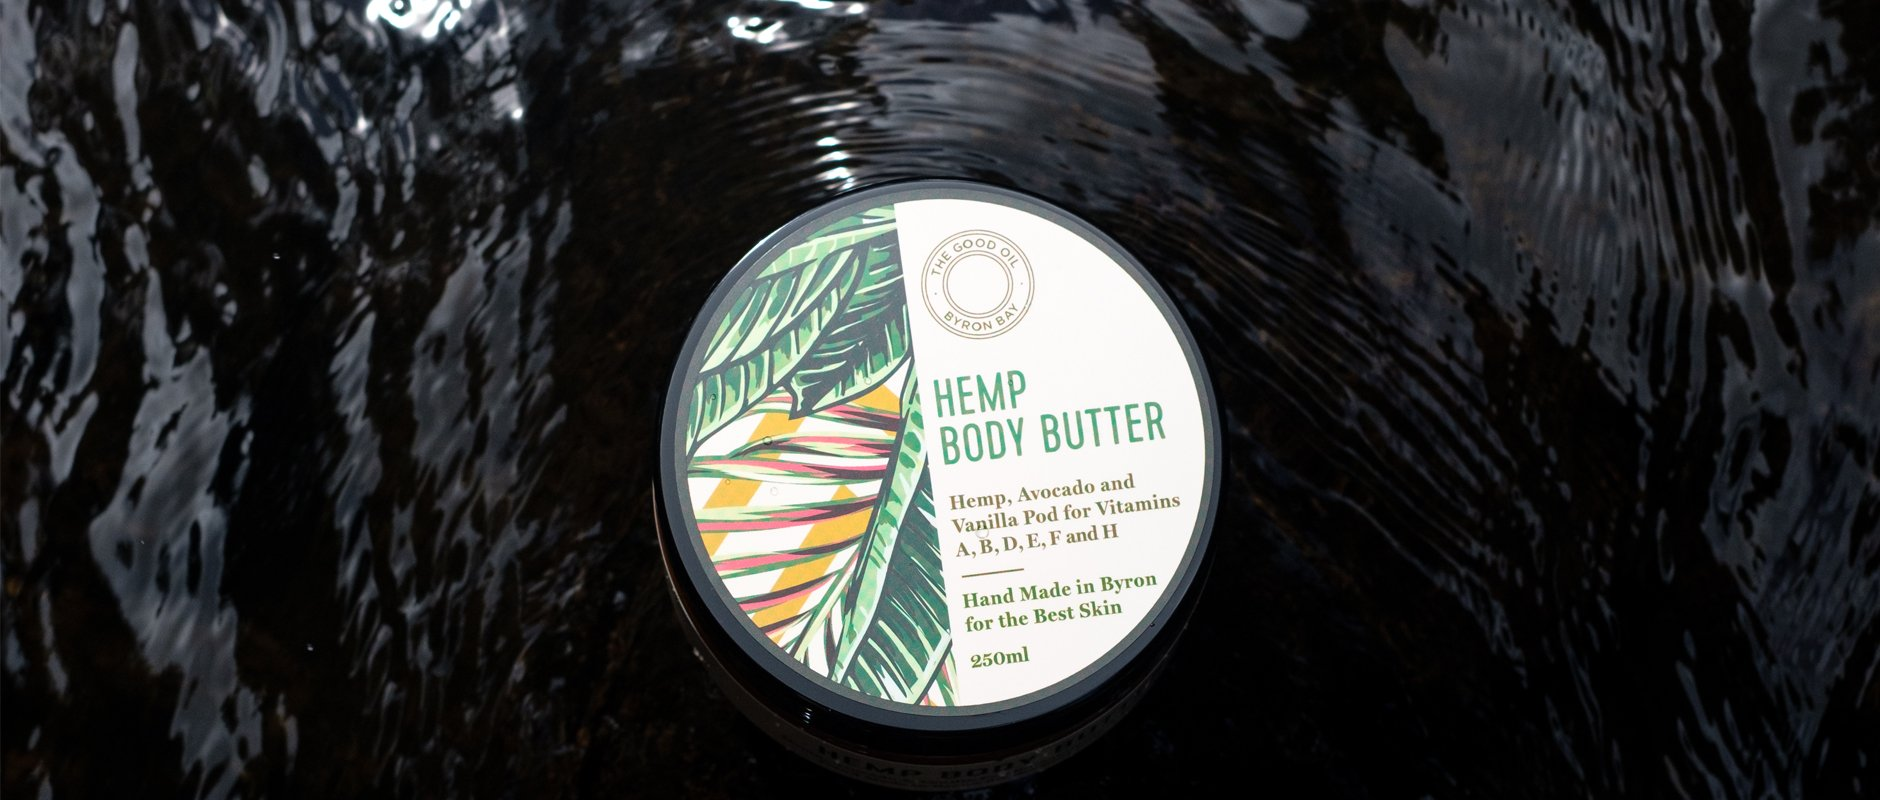 The Good Oil Hemp and Mandarin Cleanser